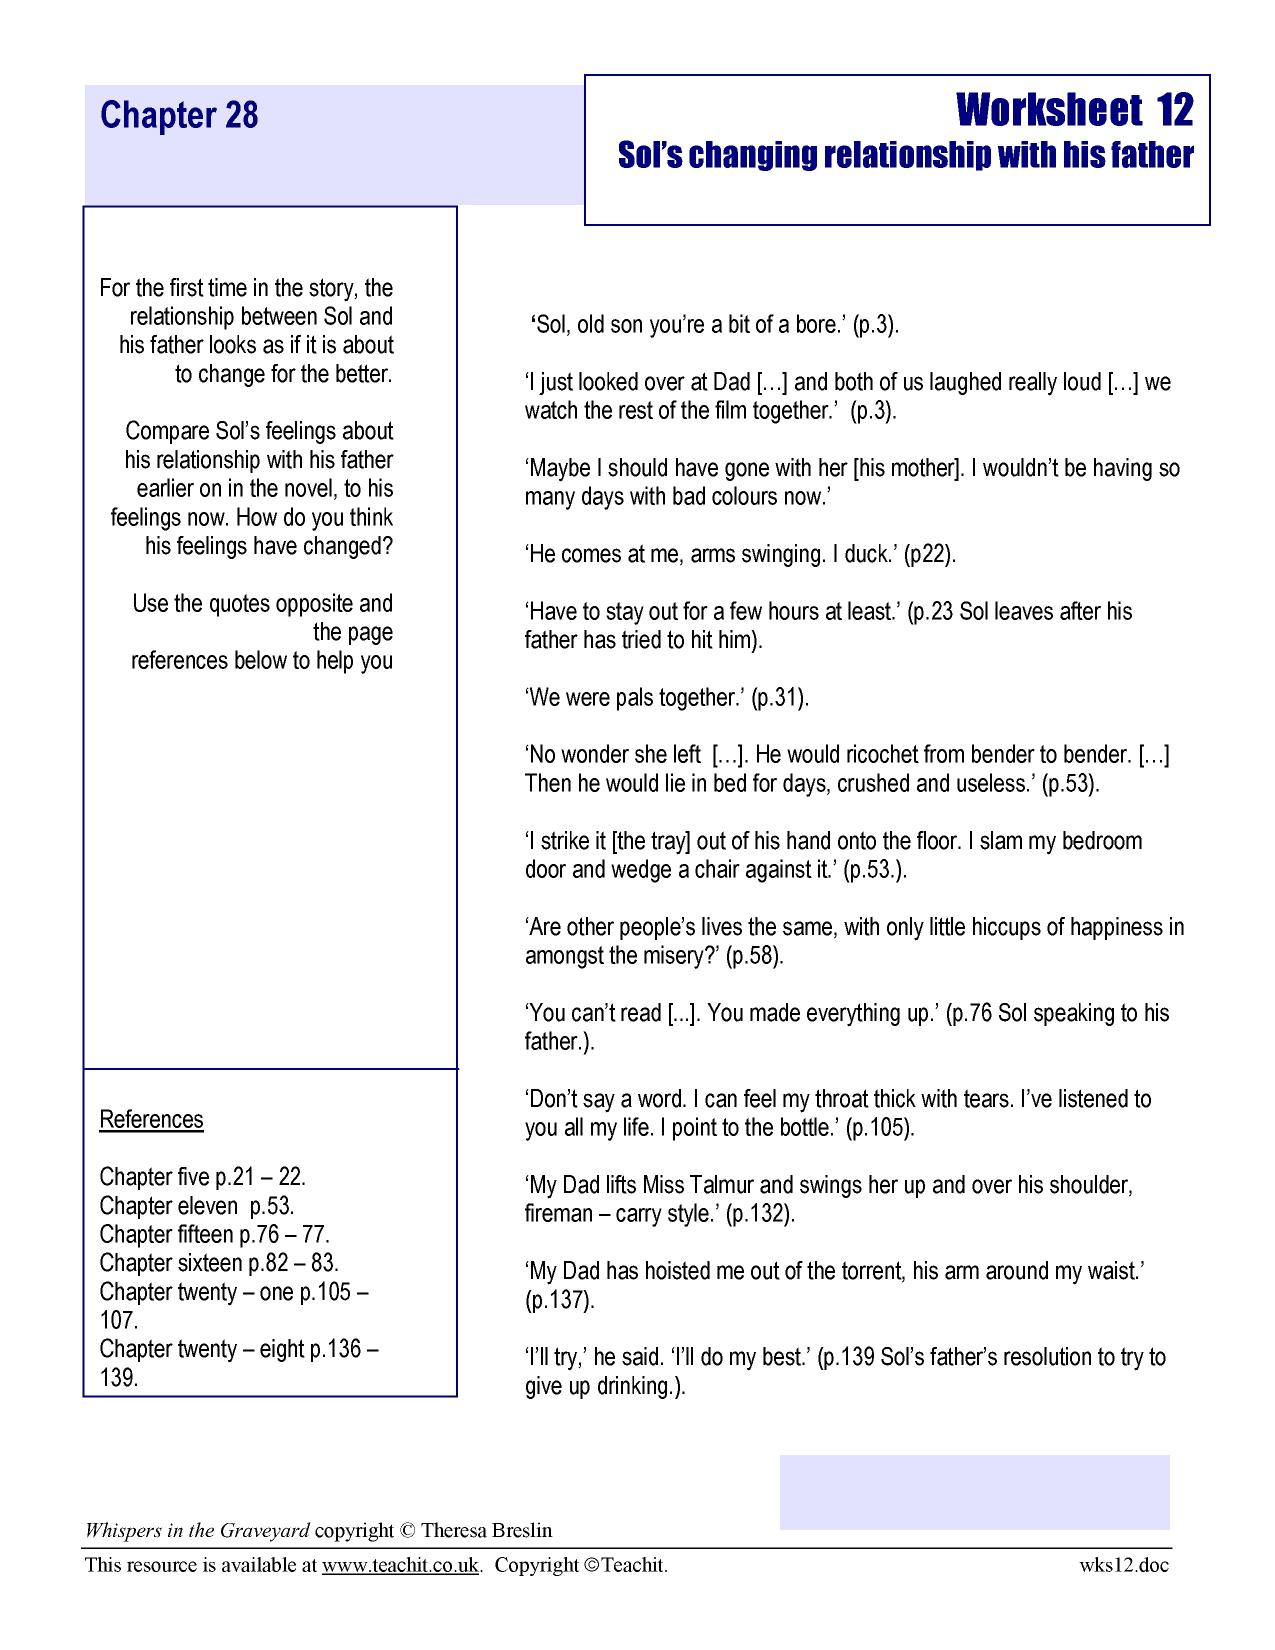 Worksheet 12 - Sol's changing relationship with his father